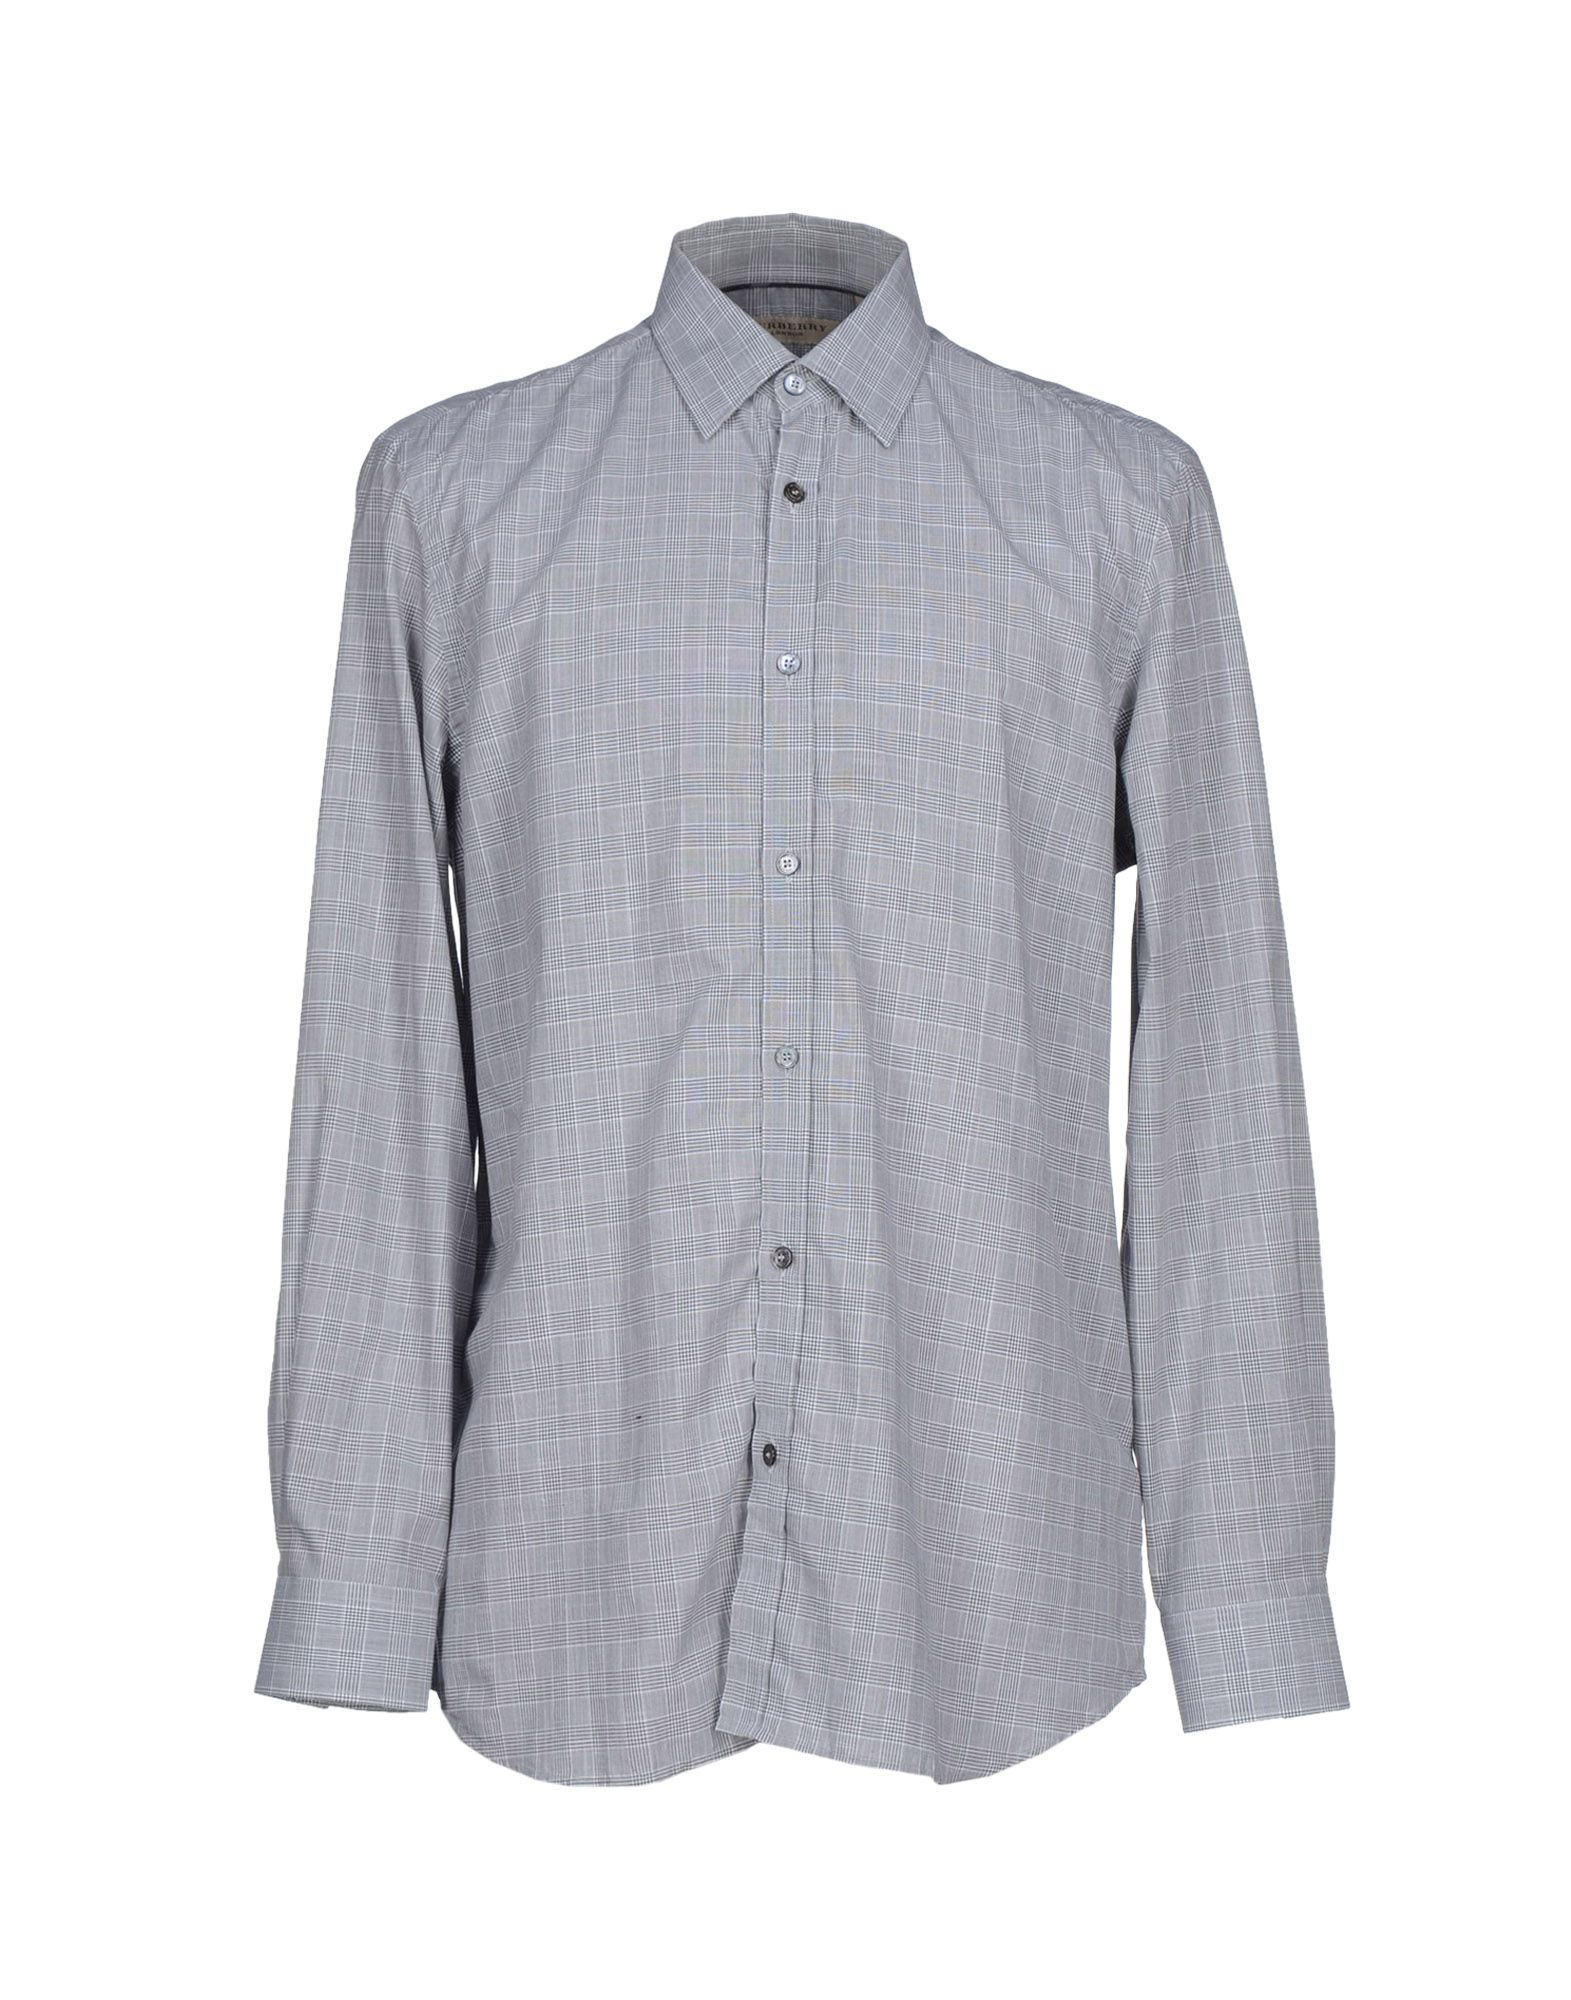 Lyst Burberry Shirt In Gray For Men